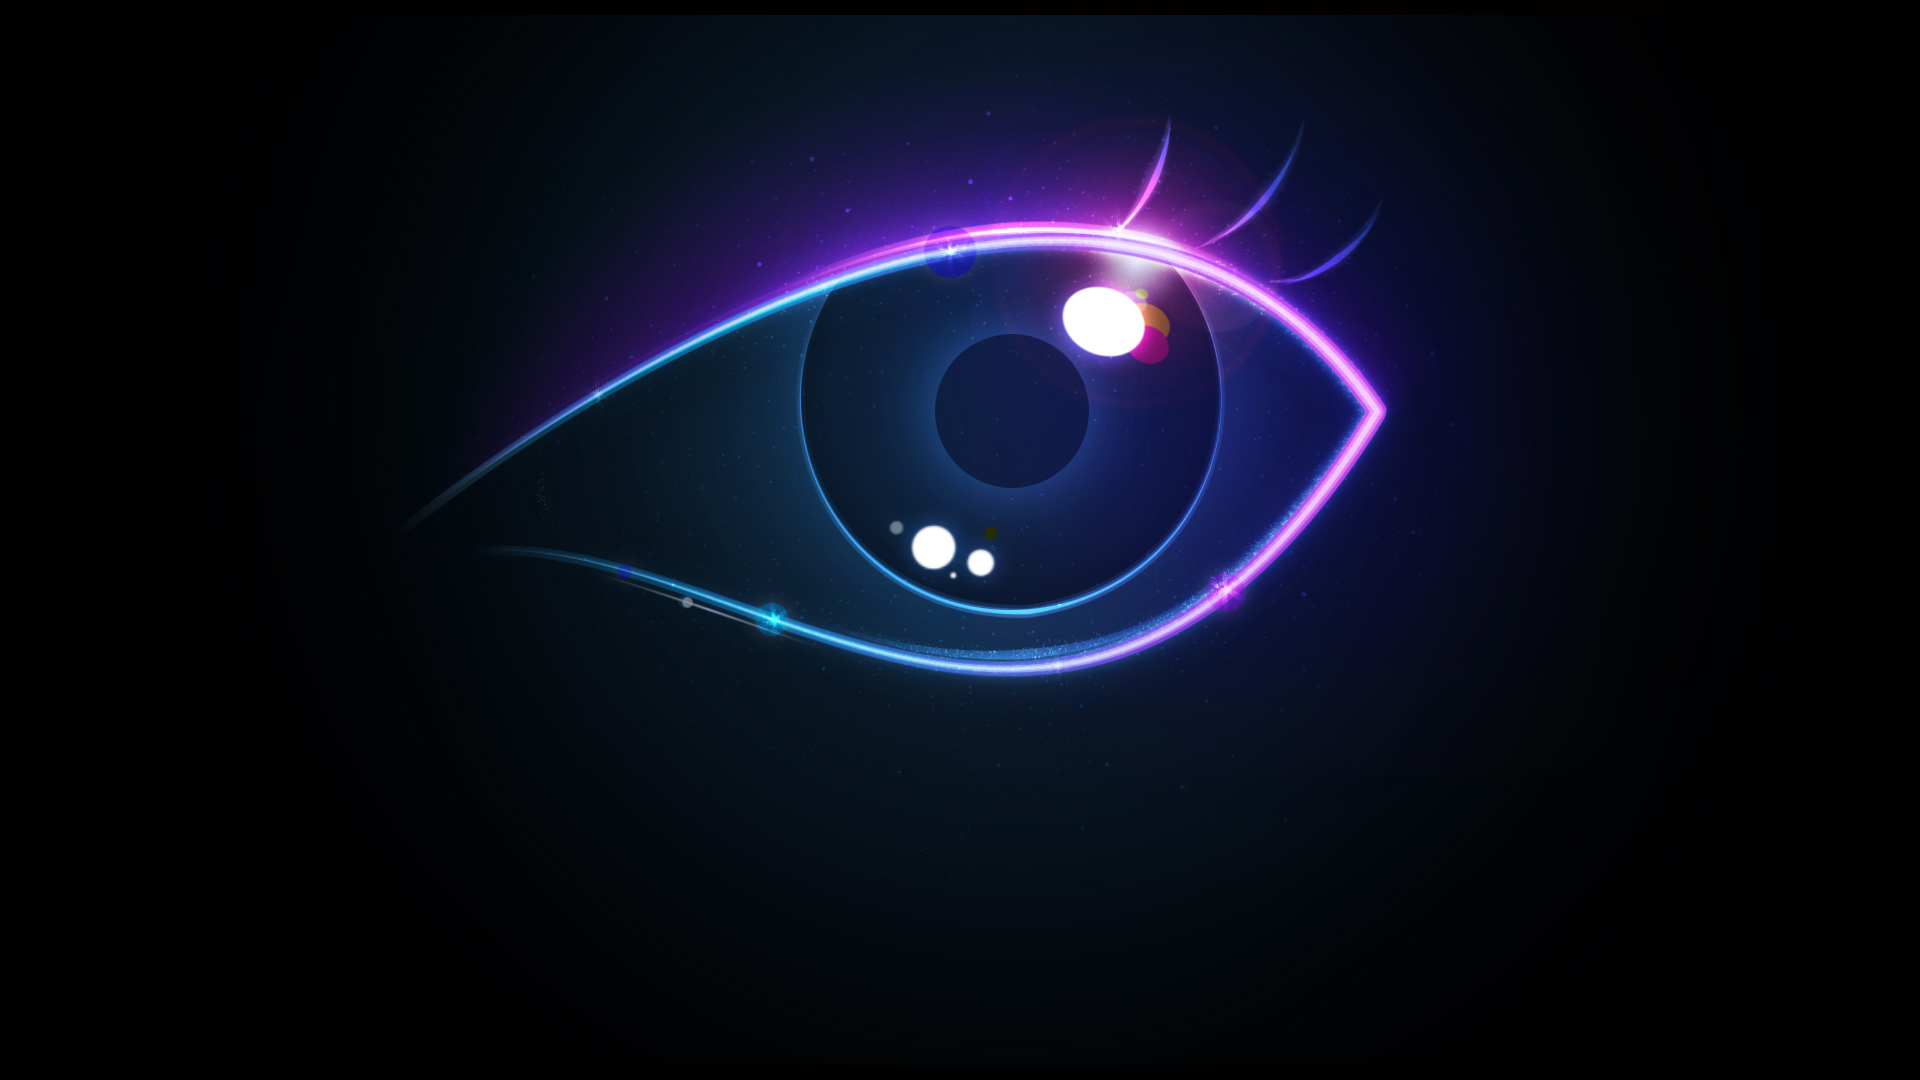 Creative Colorful Eye 587.33 Kb